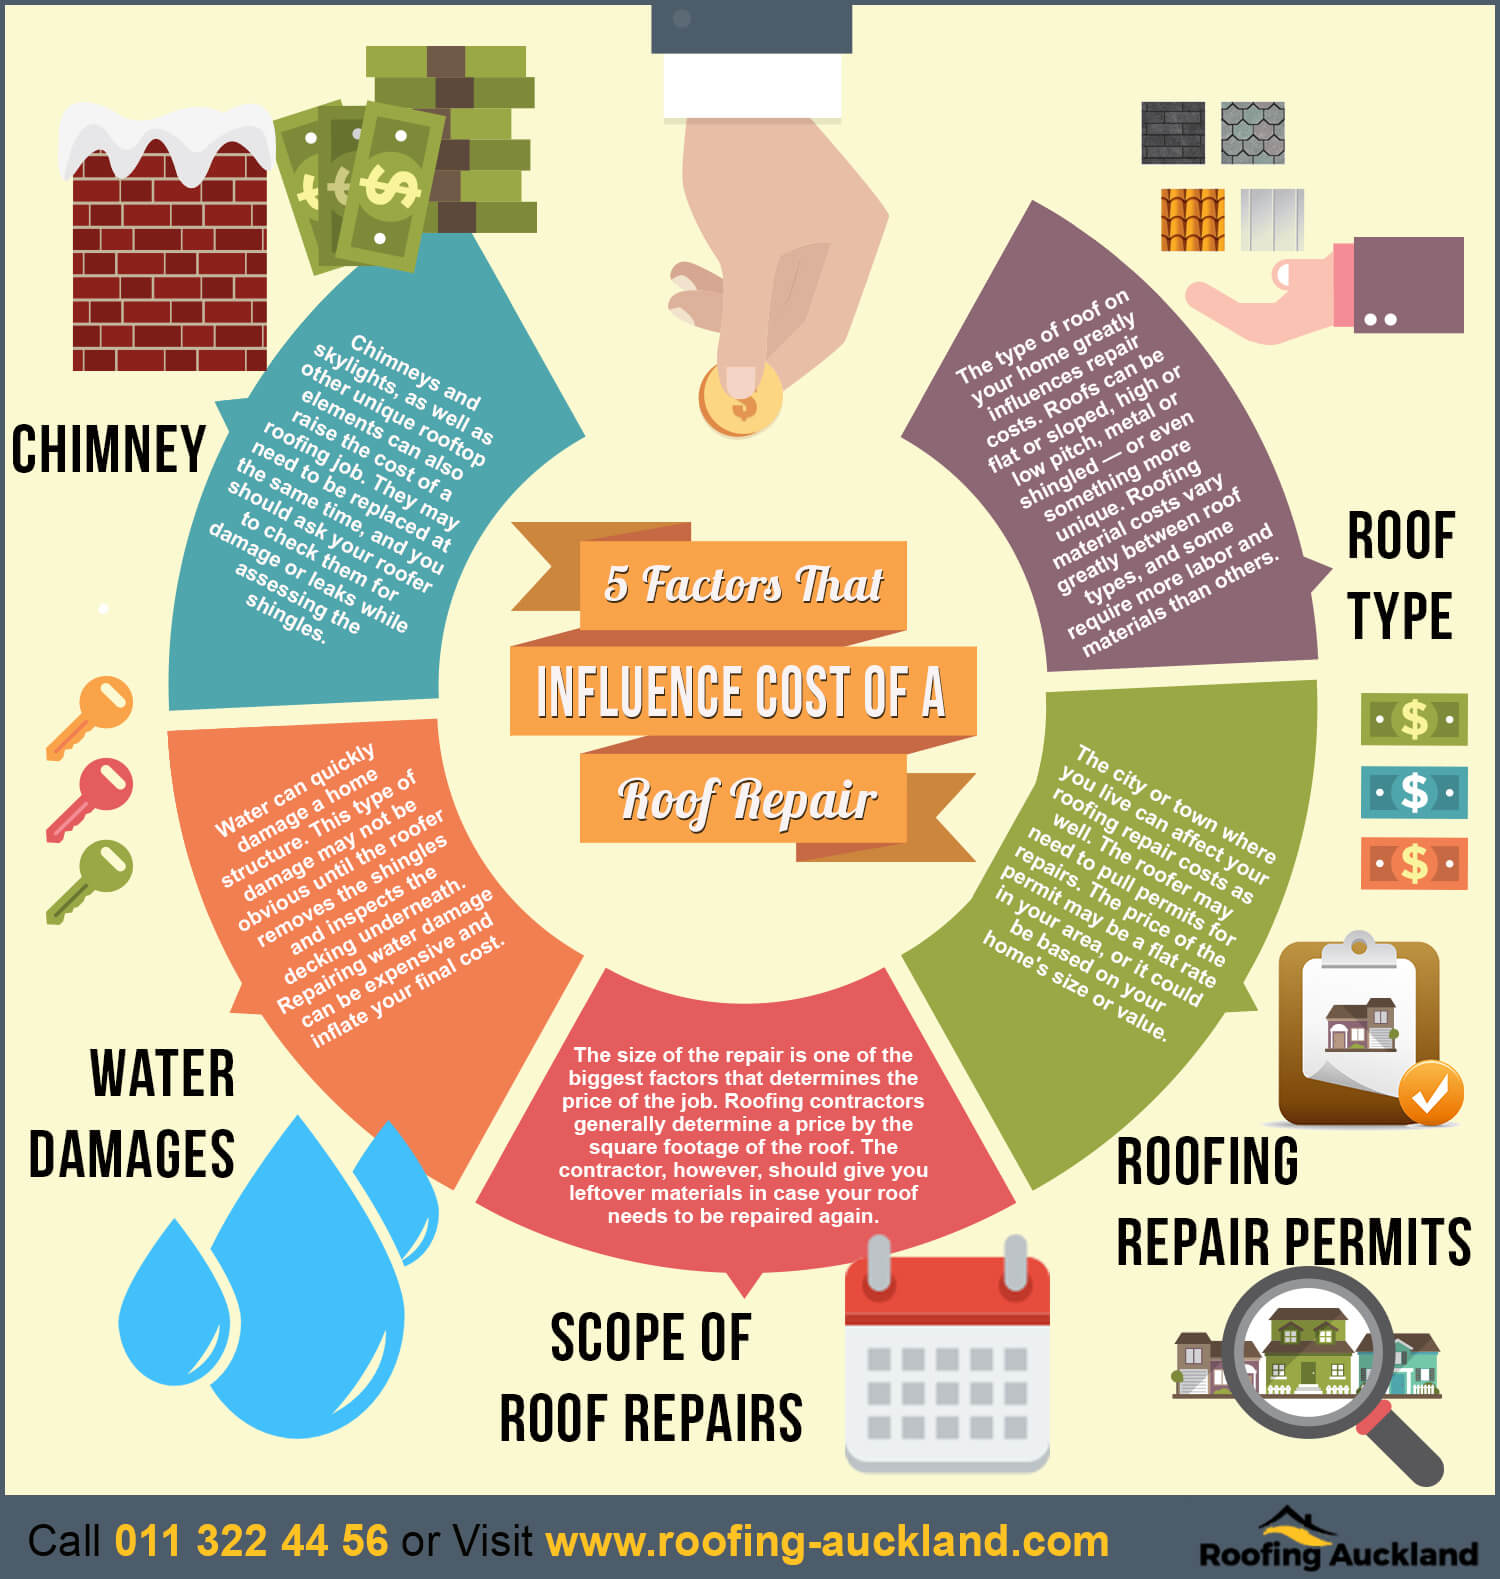 Things That Influence the Cost of a Roof Repair